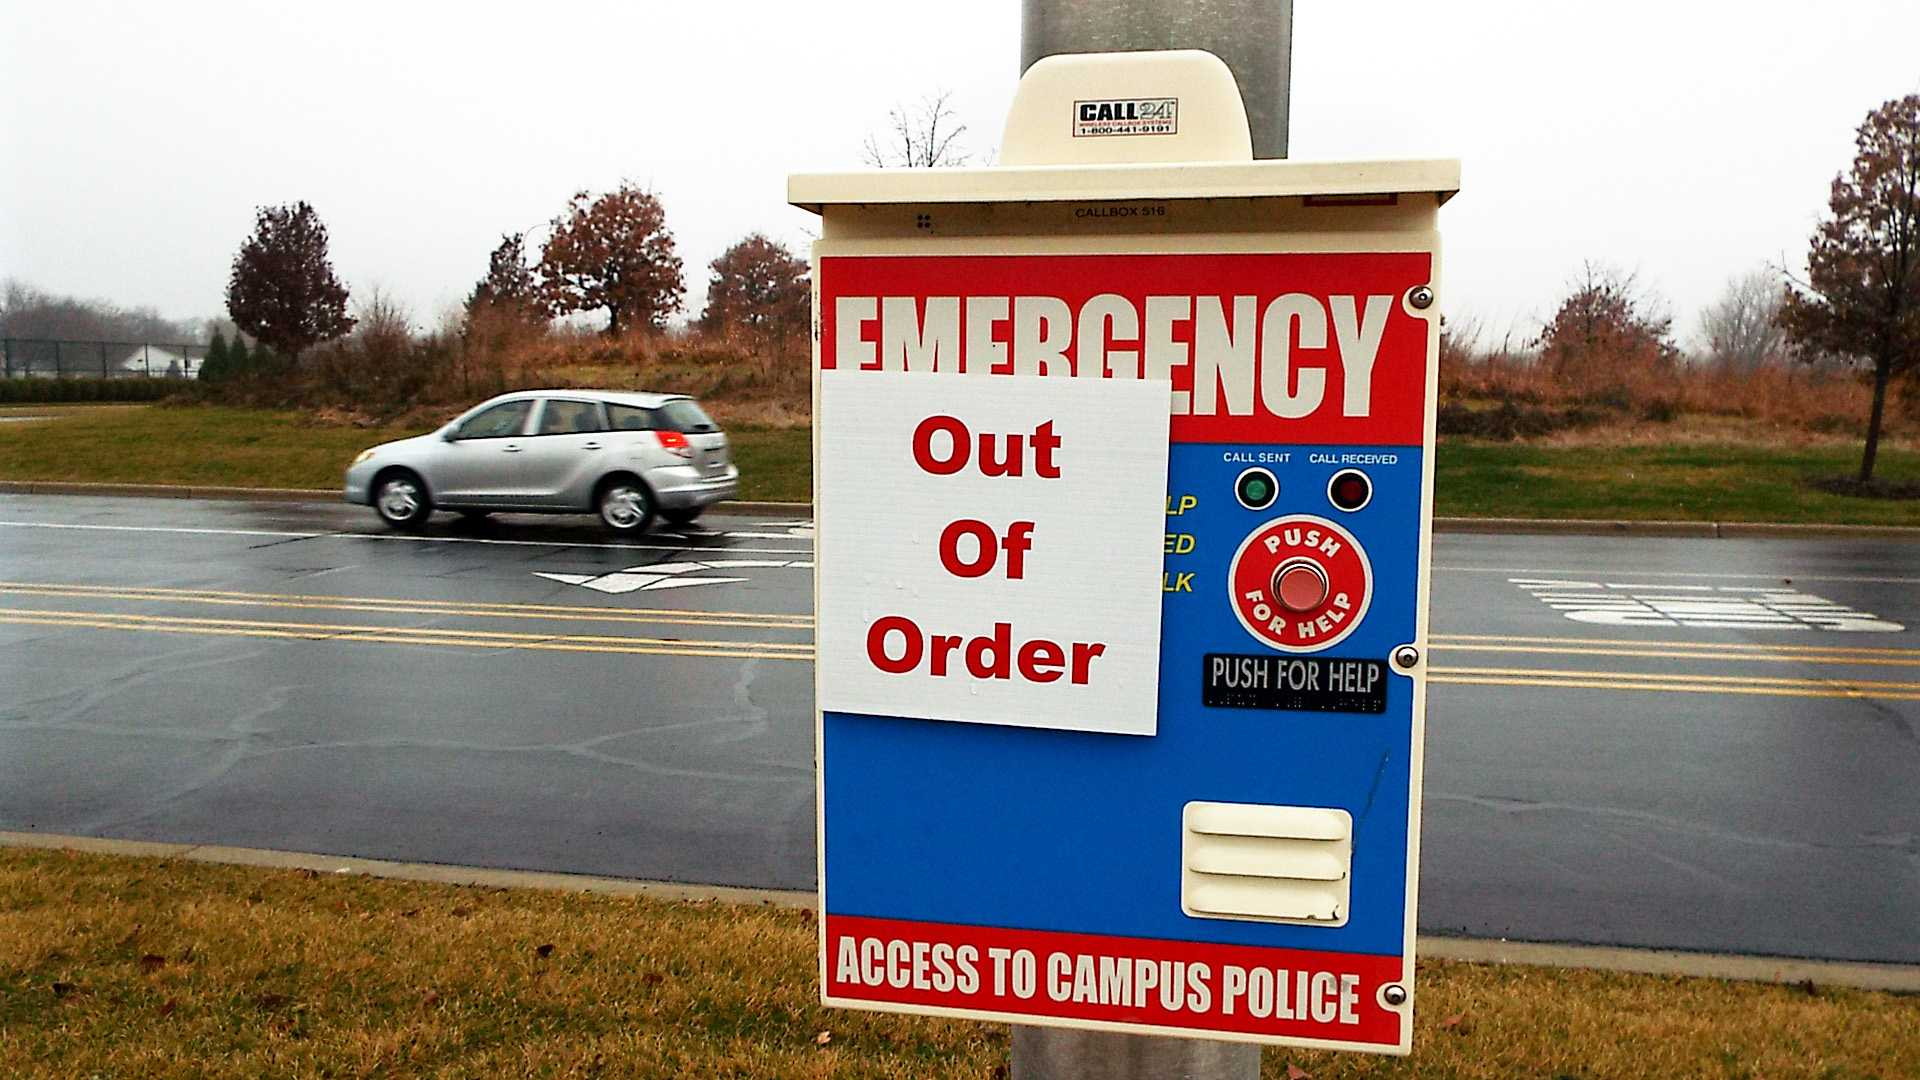 An out of order Emergency Call Box off of Park and Tallgrass at the College of DuPage on Dec. 8th, 2014.